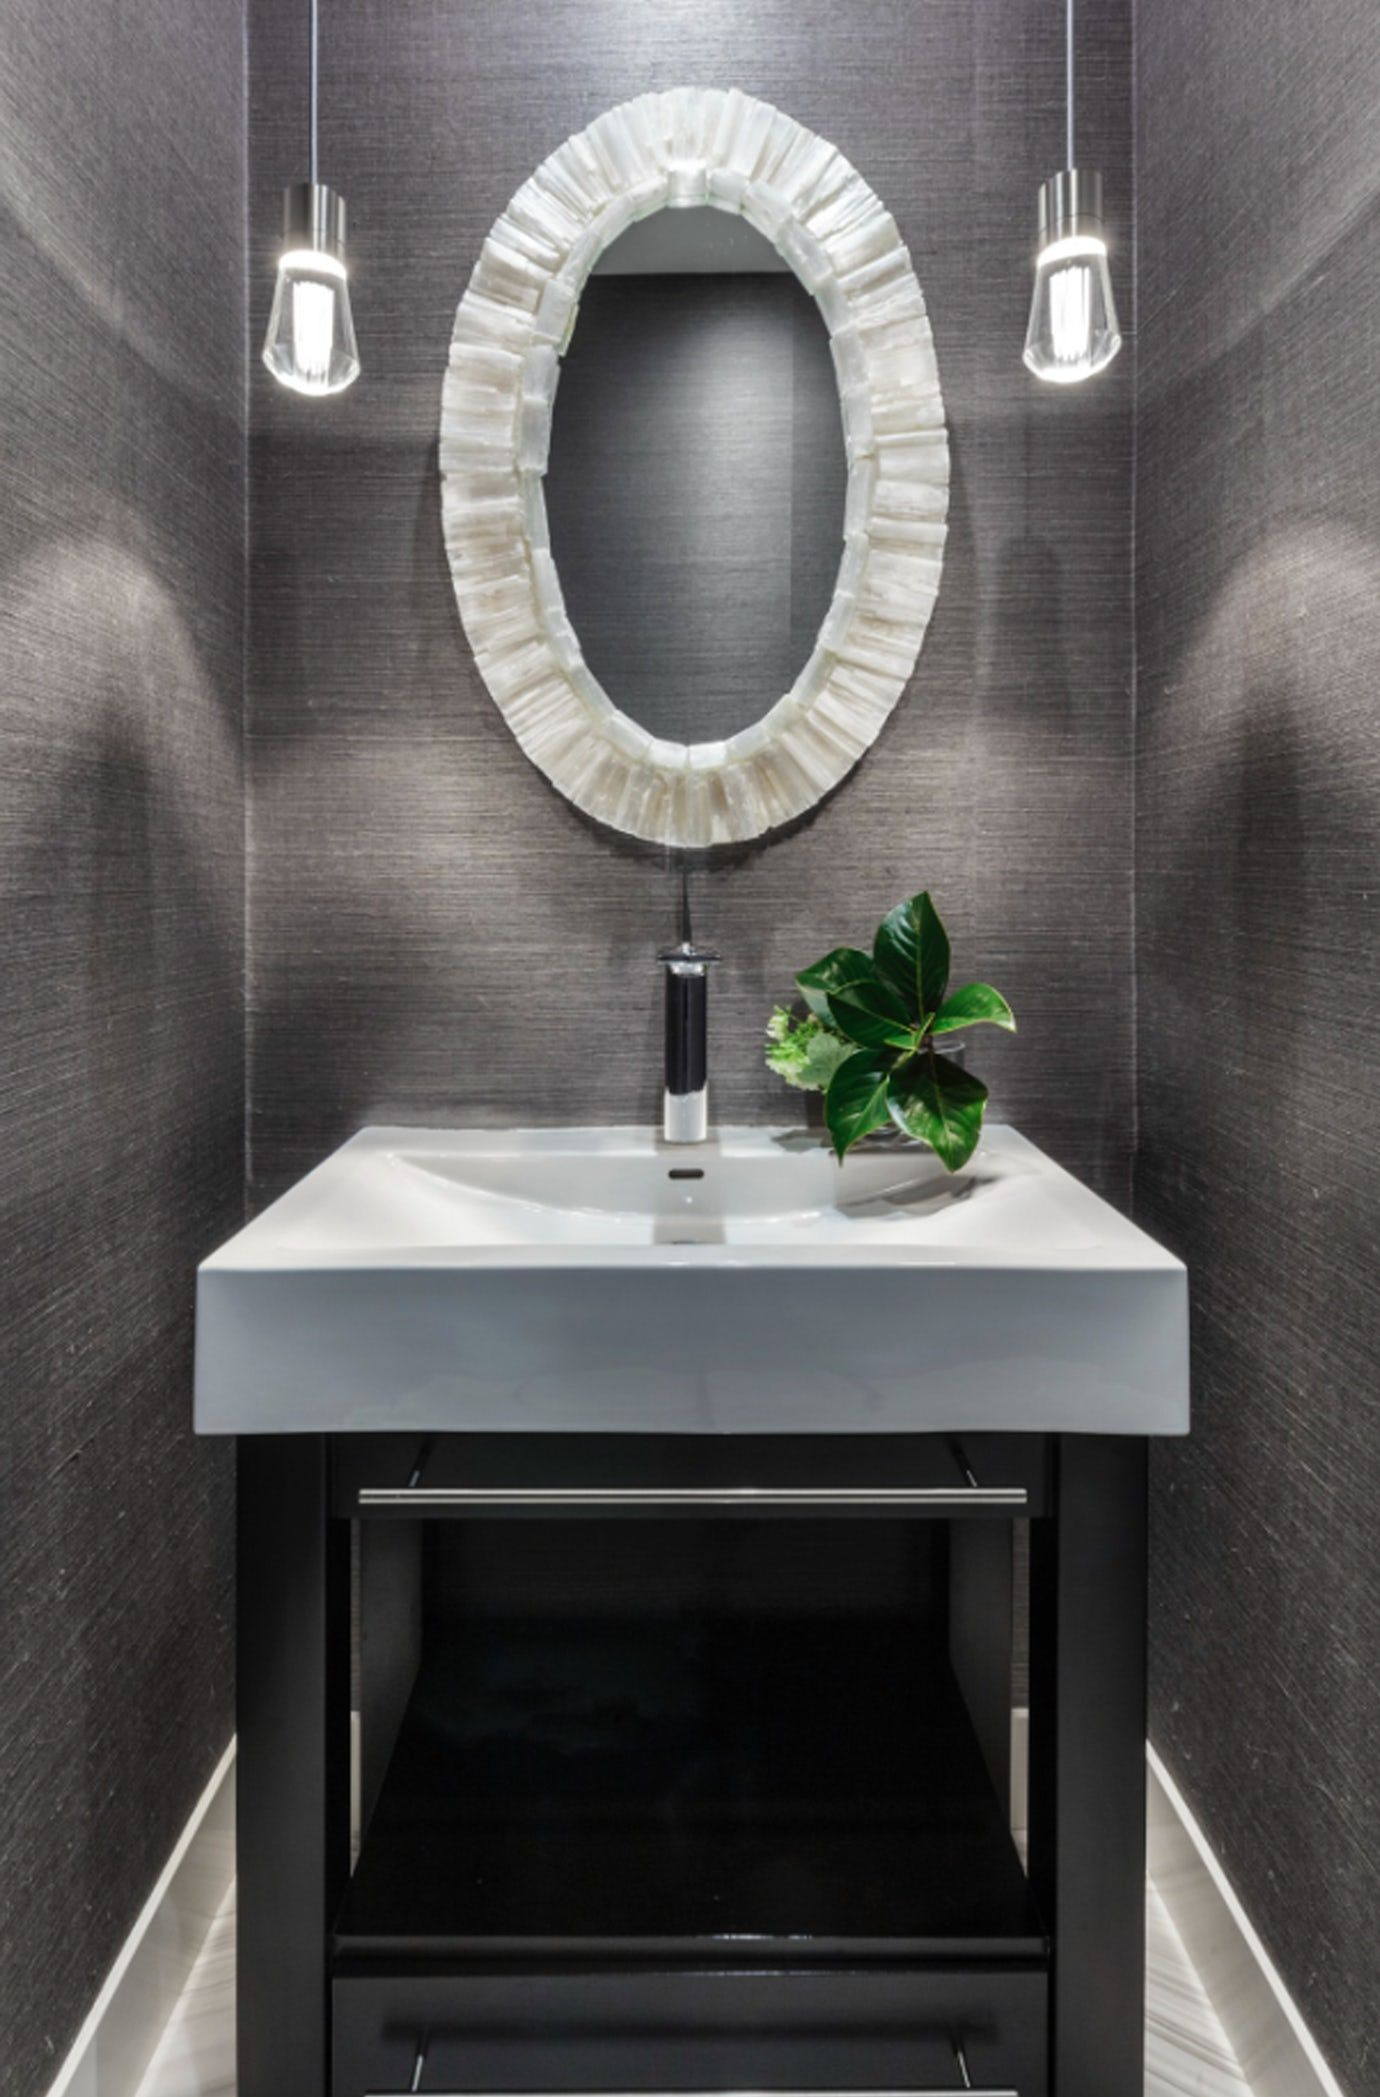 Top 10 Stunning Powder Room Decorating Ideas For 2020: A Sleek And Modern Powder Room Exudes Style Bath